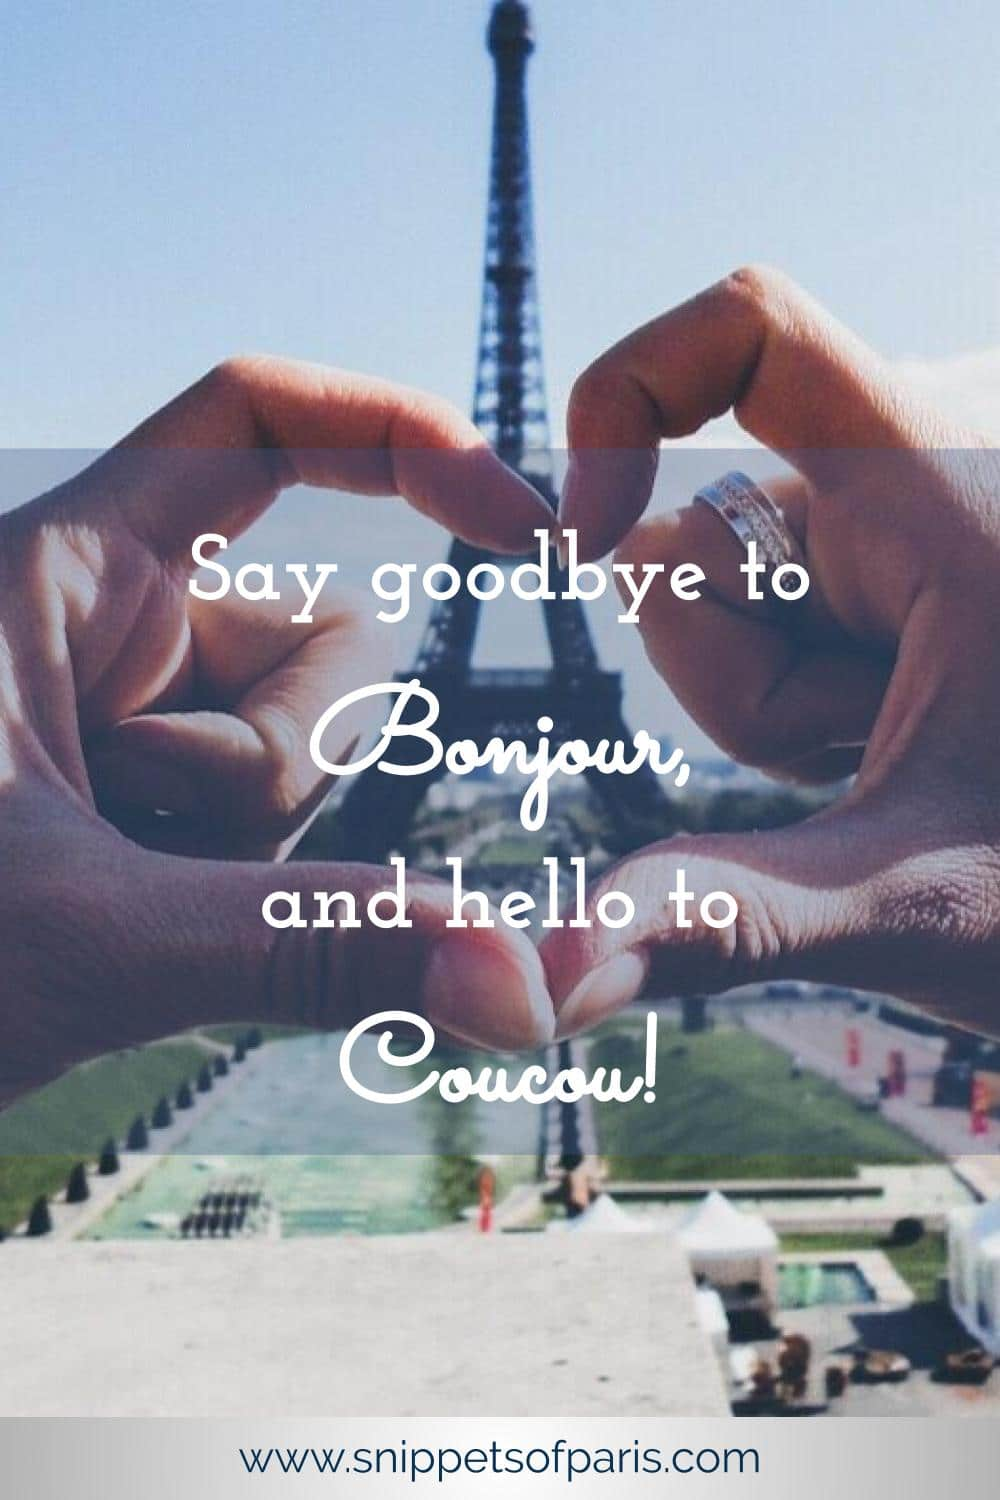 """The one French word to give you a warm fuzzy feeling: Coucou!. French slang meaning bonjour or hello, but in an informal """"my darling"""" kind of way. #France #learnfrench"""